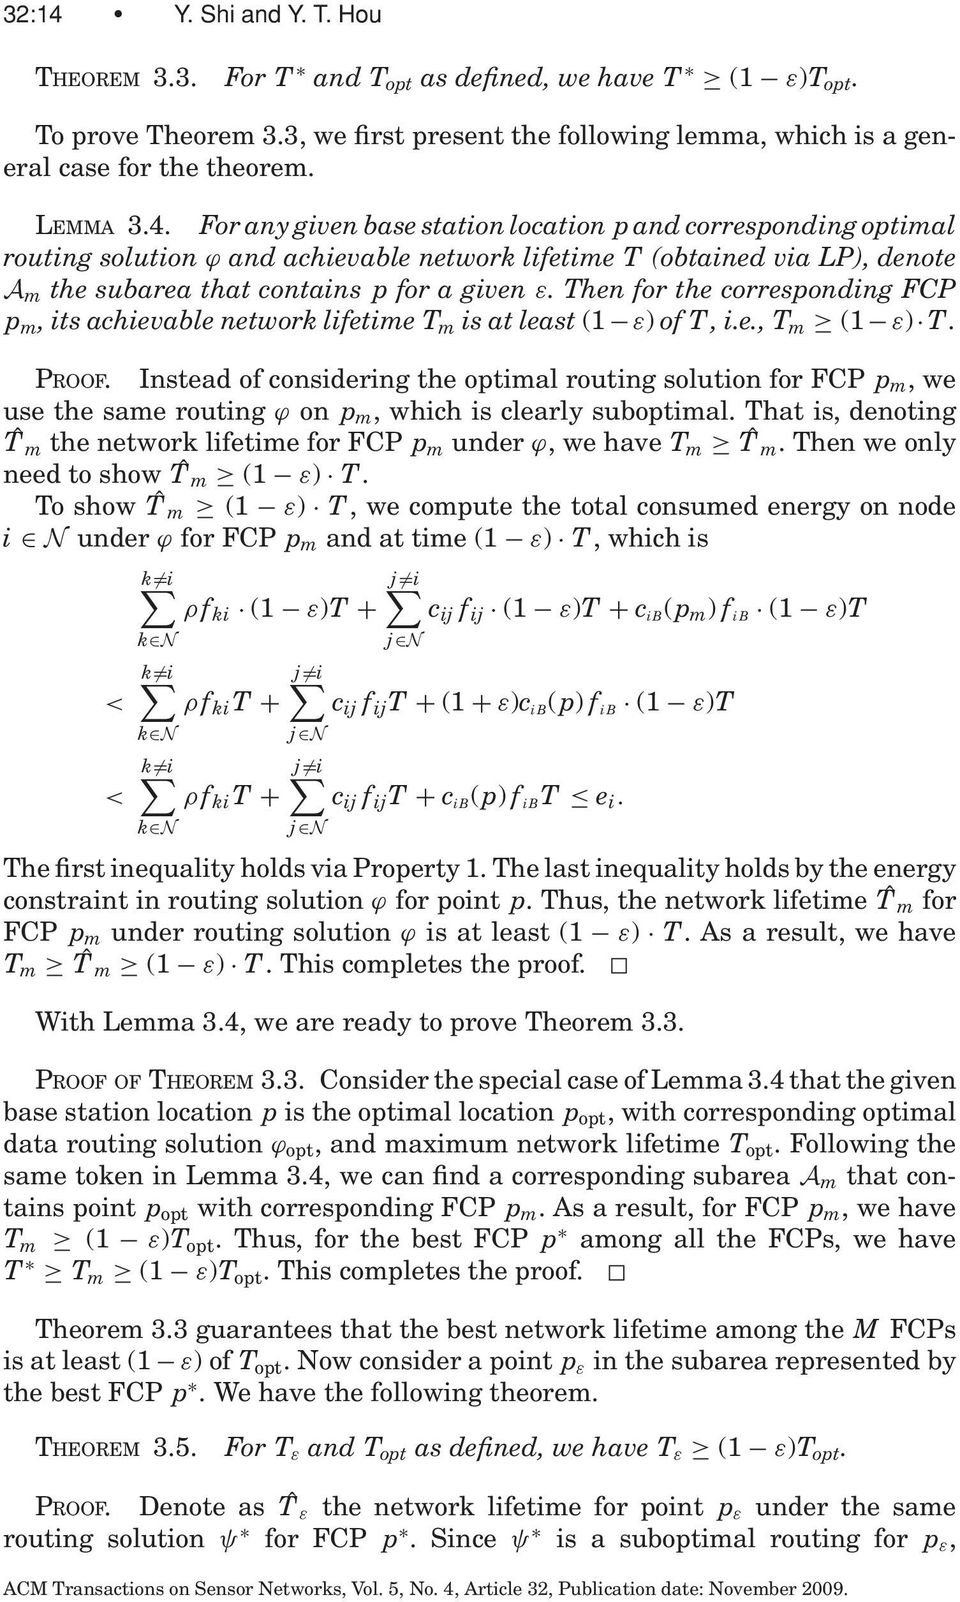 Then for the corresponding FCP p m, its achievable network lifetime T m is at least (1 ε) of T, i.e., T m (1 ε) T. PROOF.